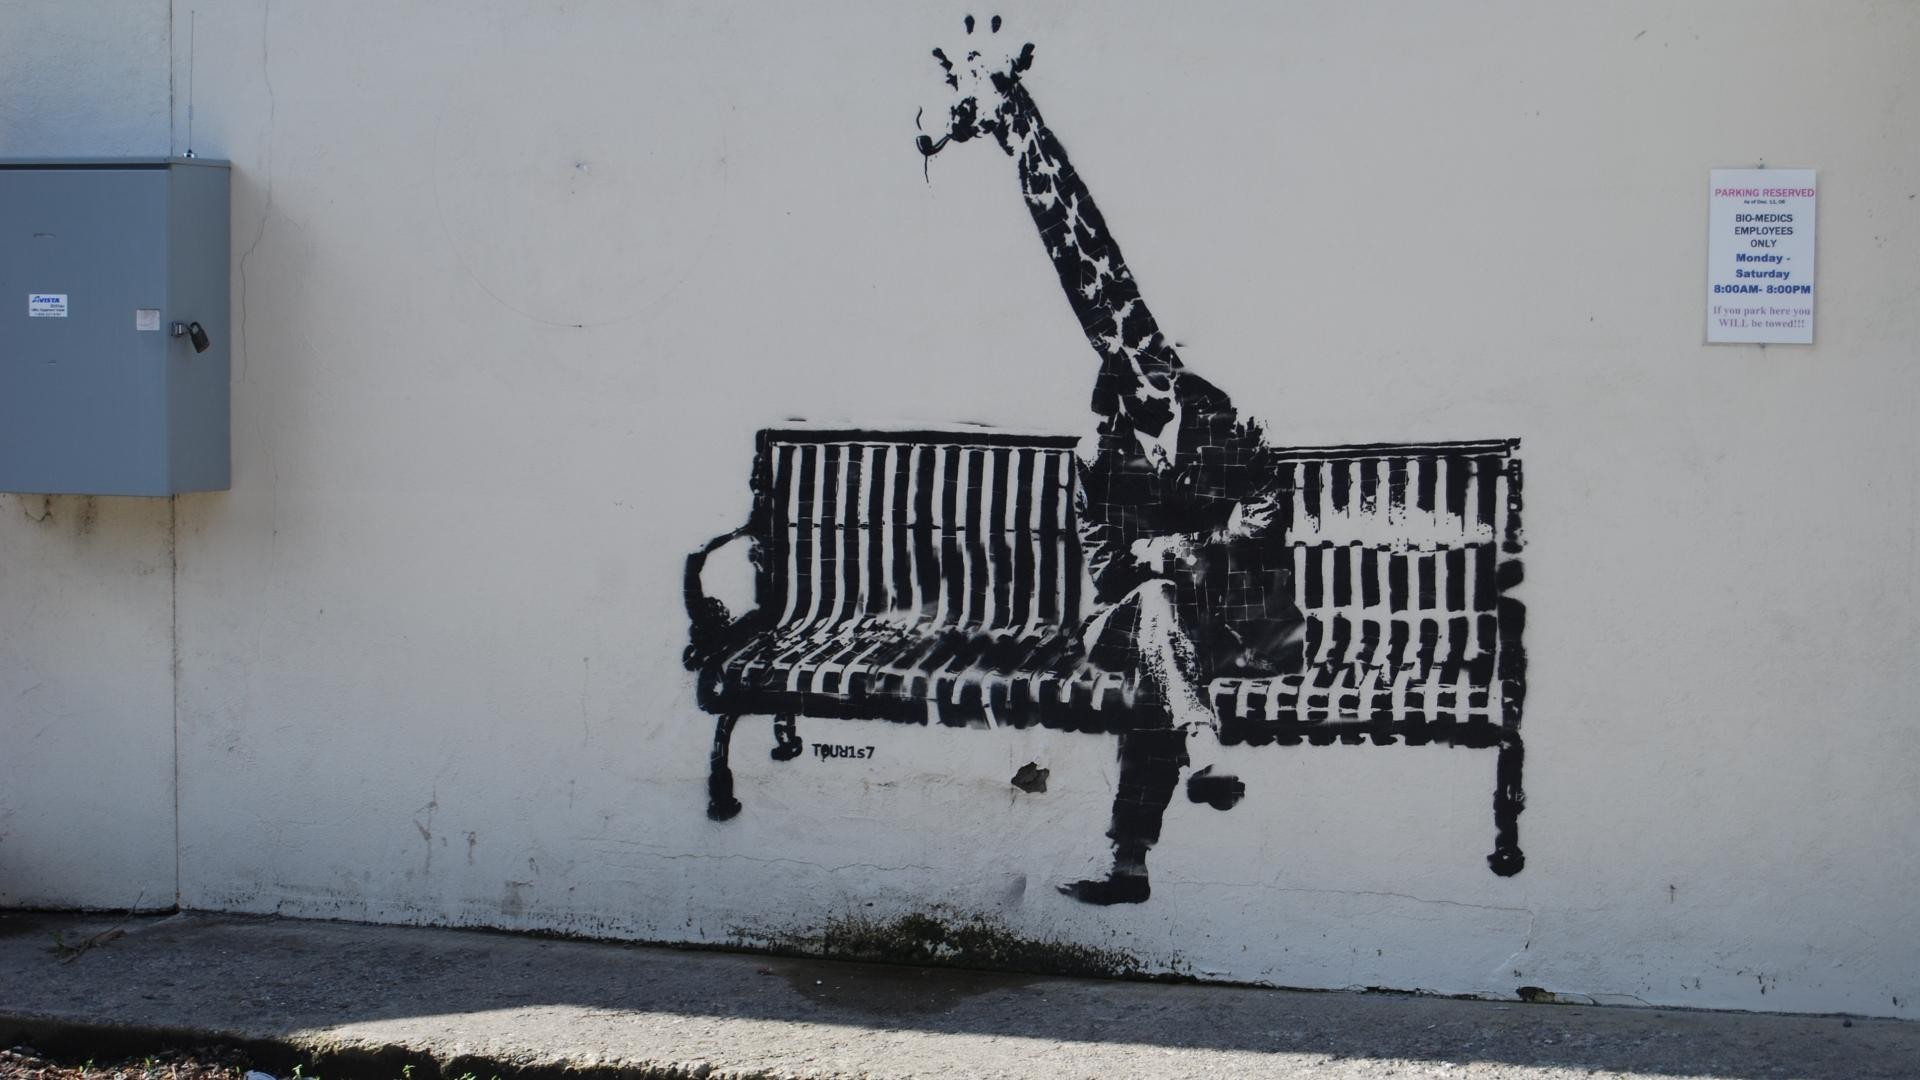 artwork, Animals, Graffiti, Walls, Banksy, Bench, Sitting, Legs, Giraffes,  Shadow, Street Art Wallpapers HD / Desktop and Mobile Backgrounds